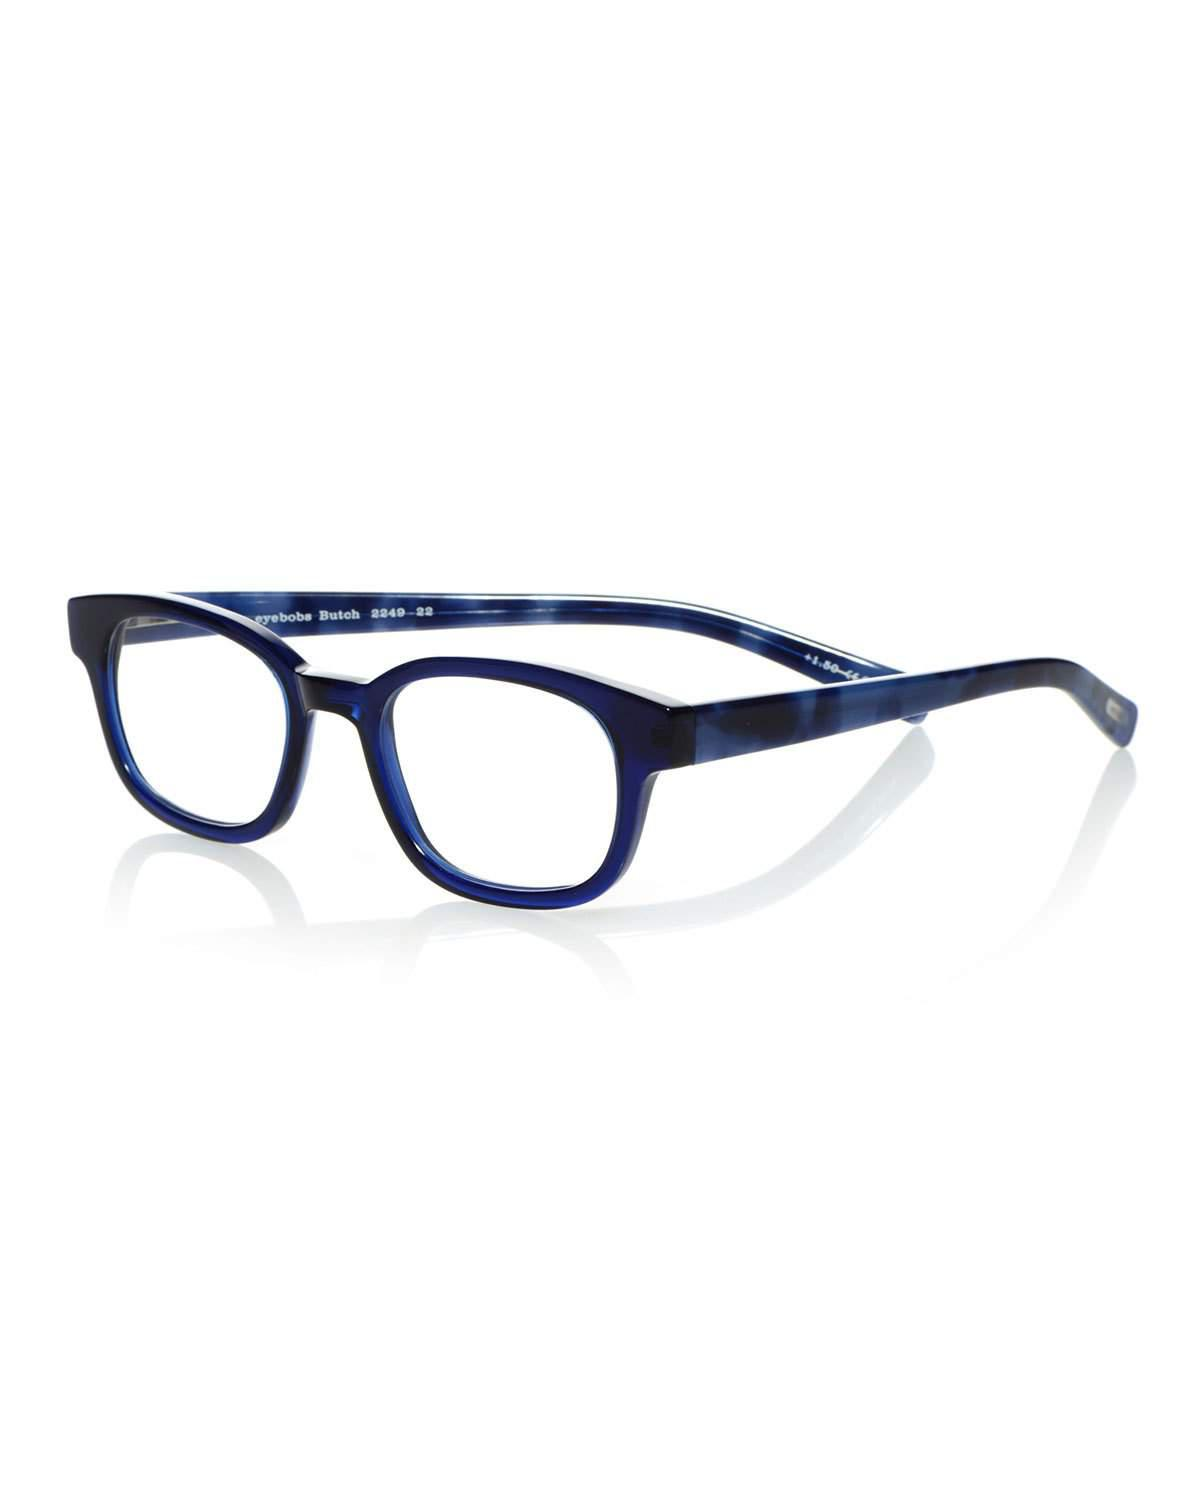 055daff565 Lyst - Eyebobs Butch Acetate Reading Glasses in Blue